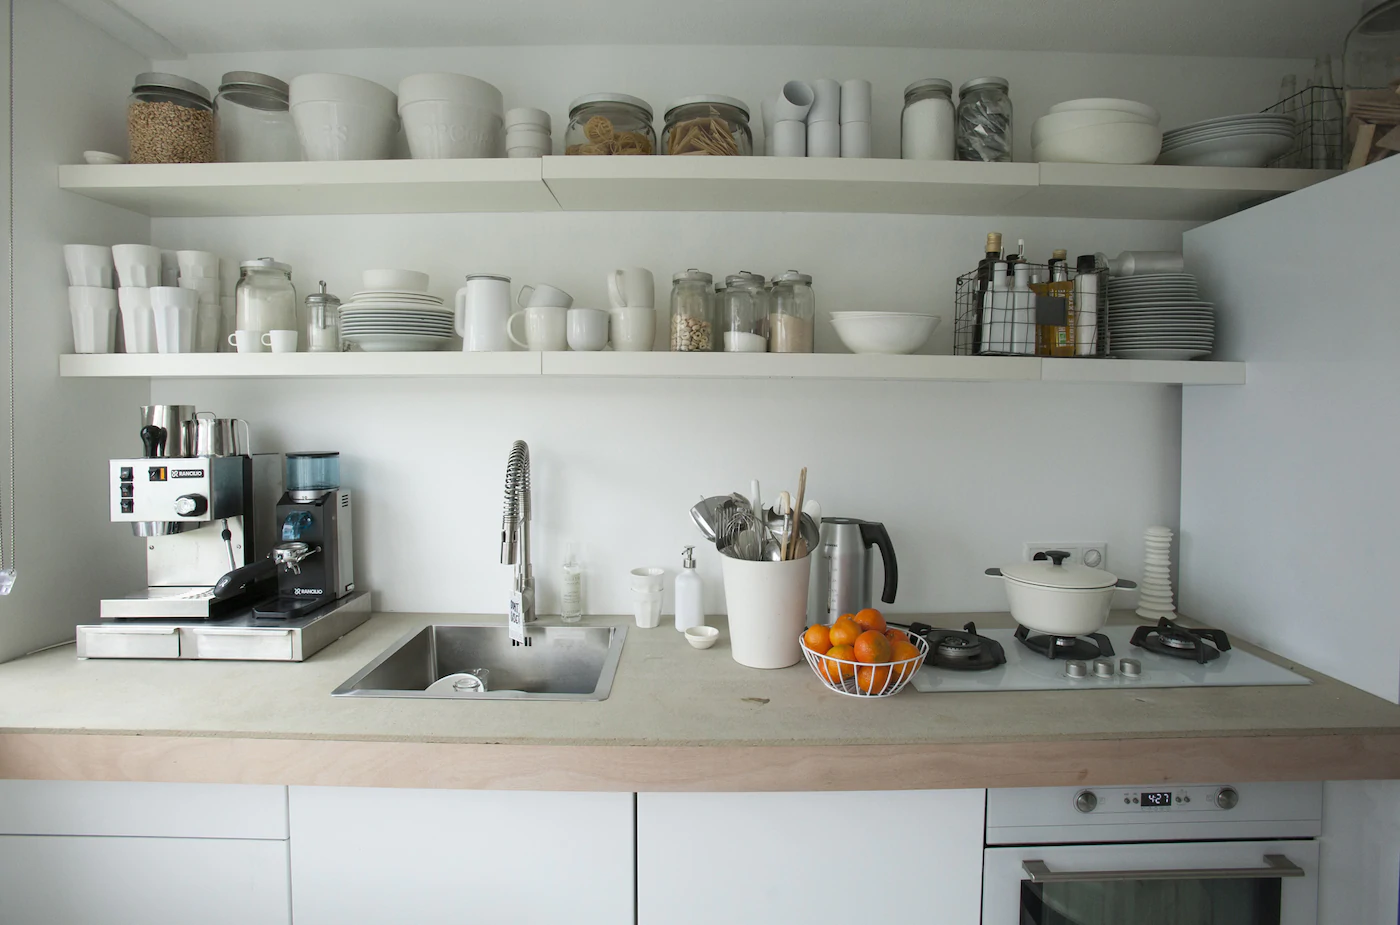 Tiny kitchen well organised